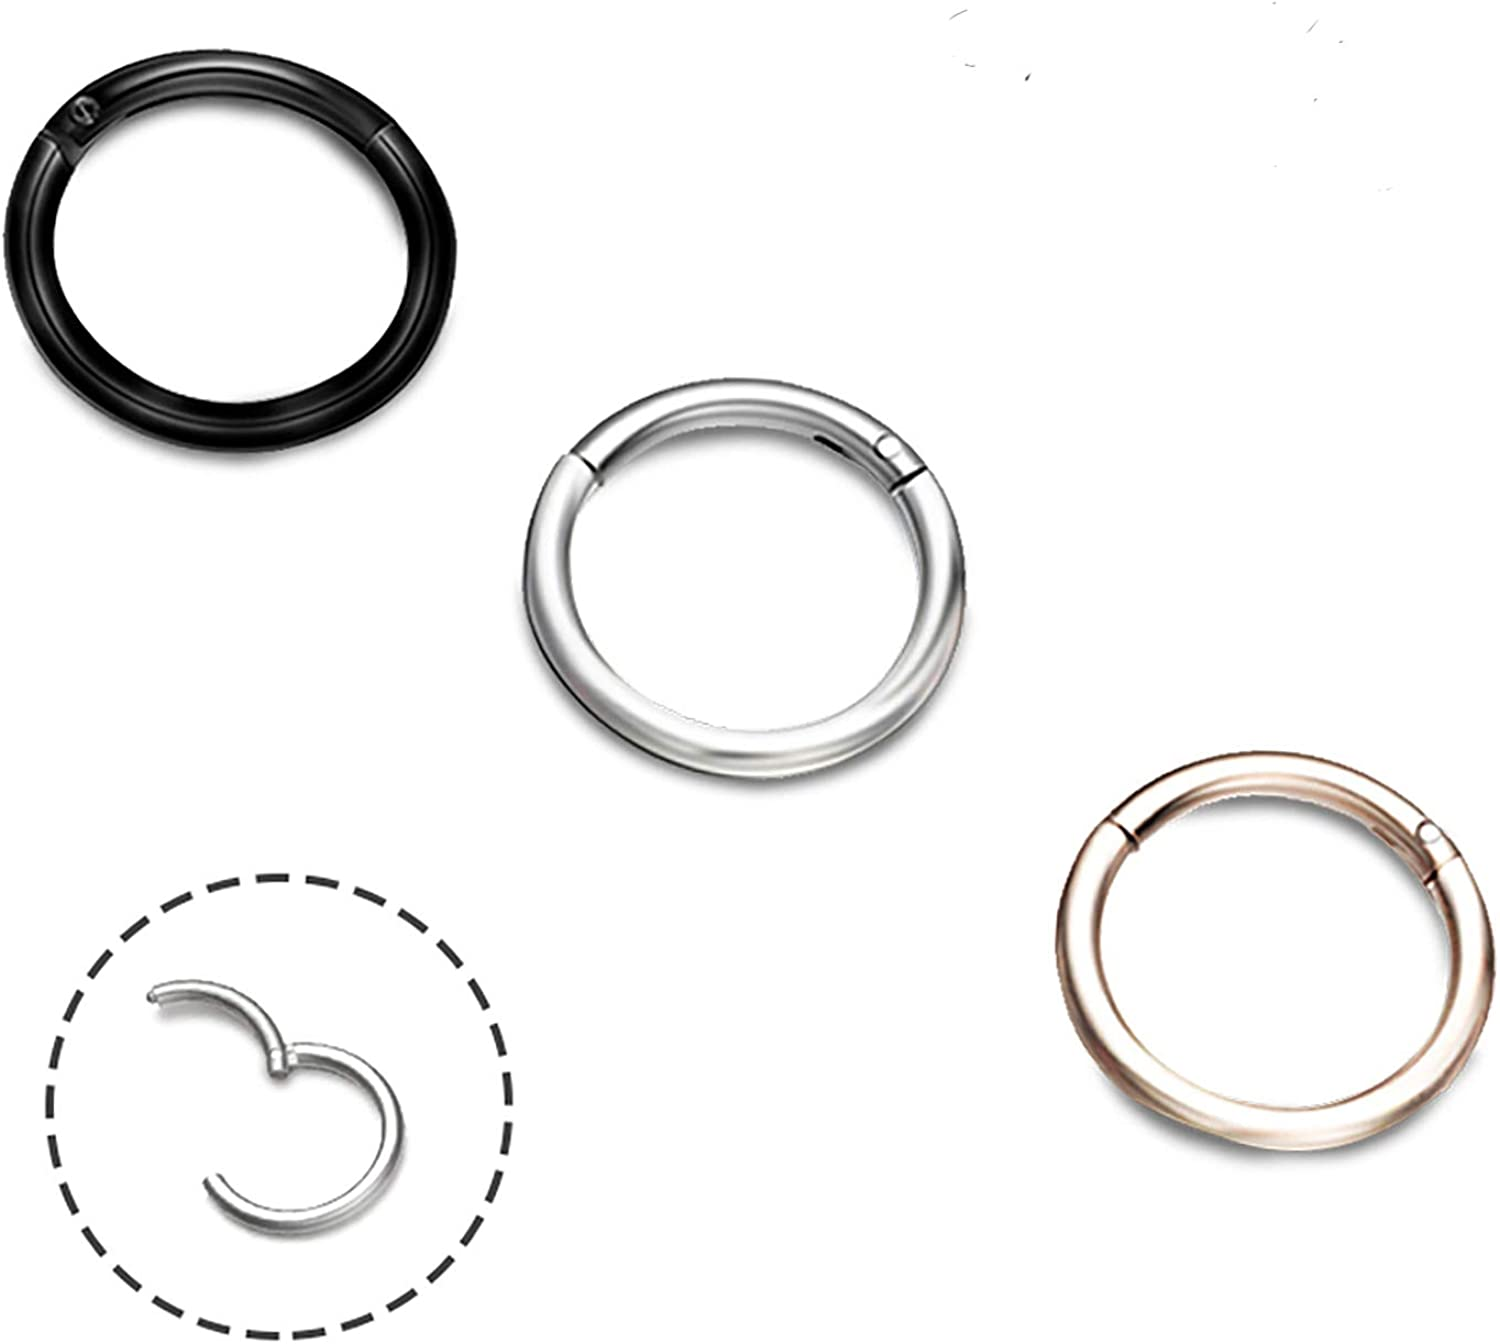 EVBEA 3-4 PCS Cartilage Earring Hoop 14G 18G 8mm 10mm 12mm Surgical Steel Septum Jewelry Daith Piercing Nose Ring …